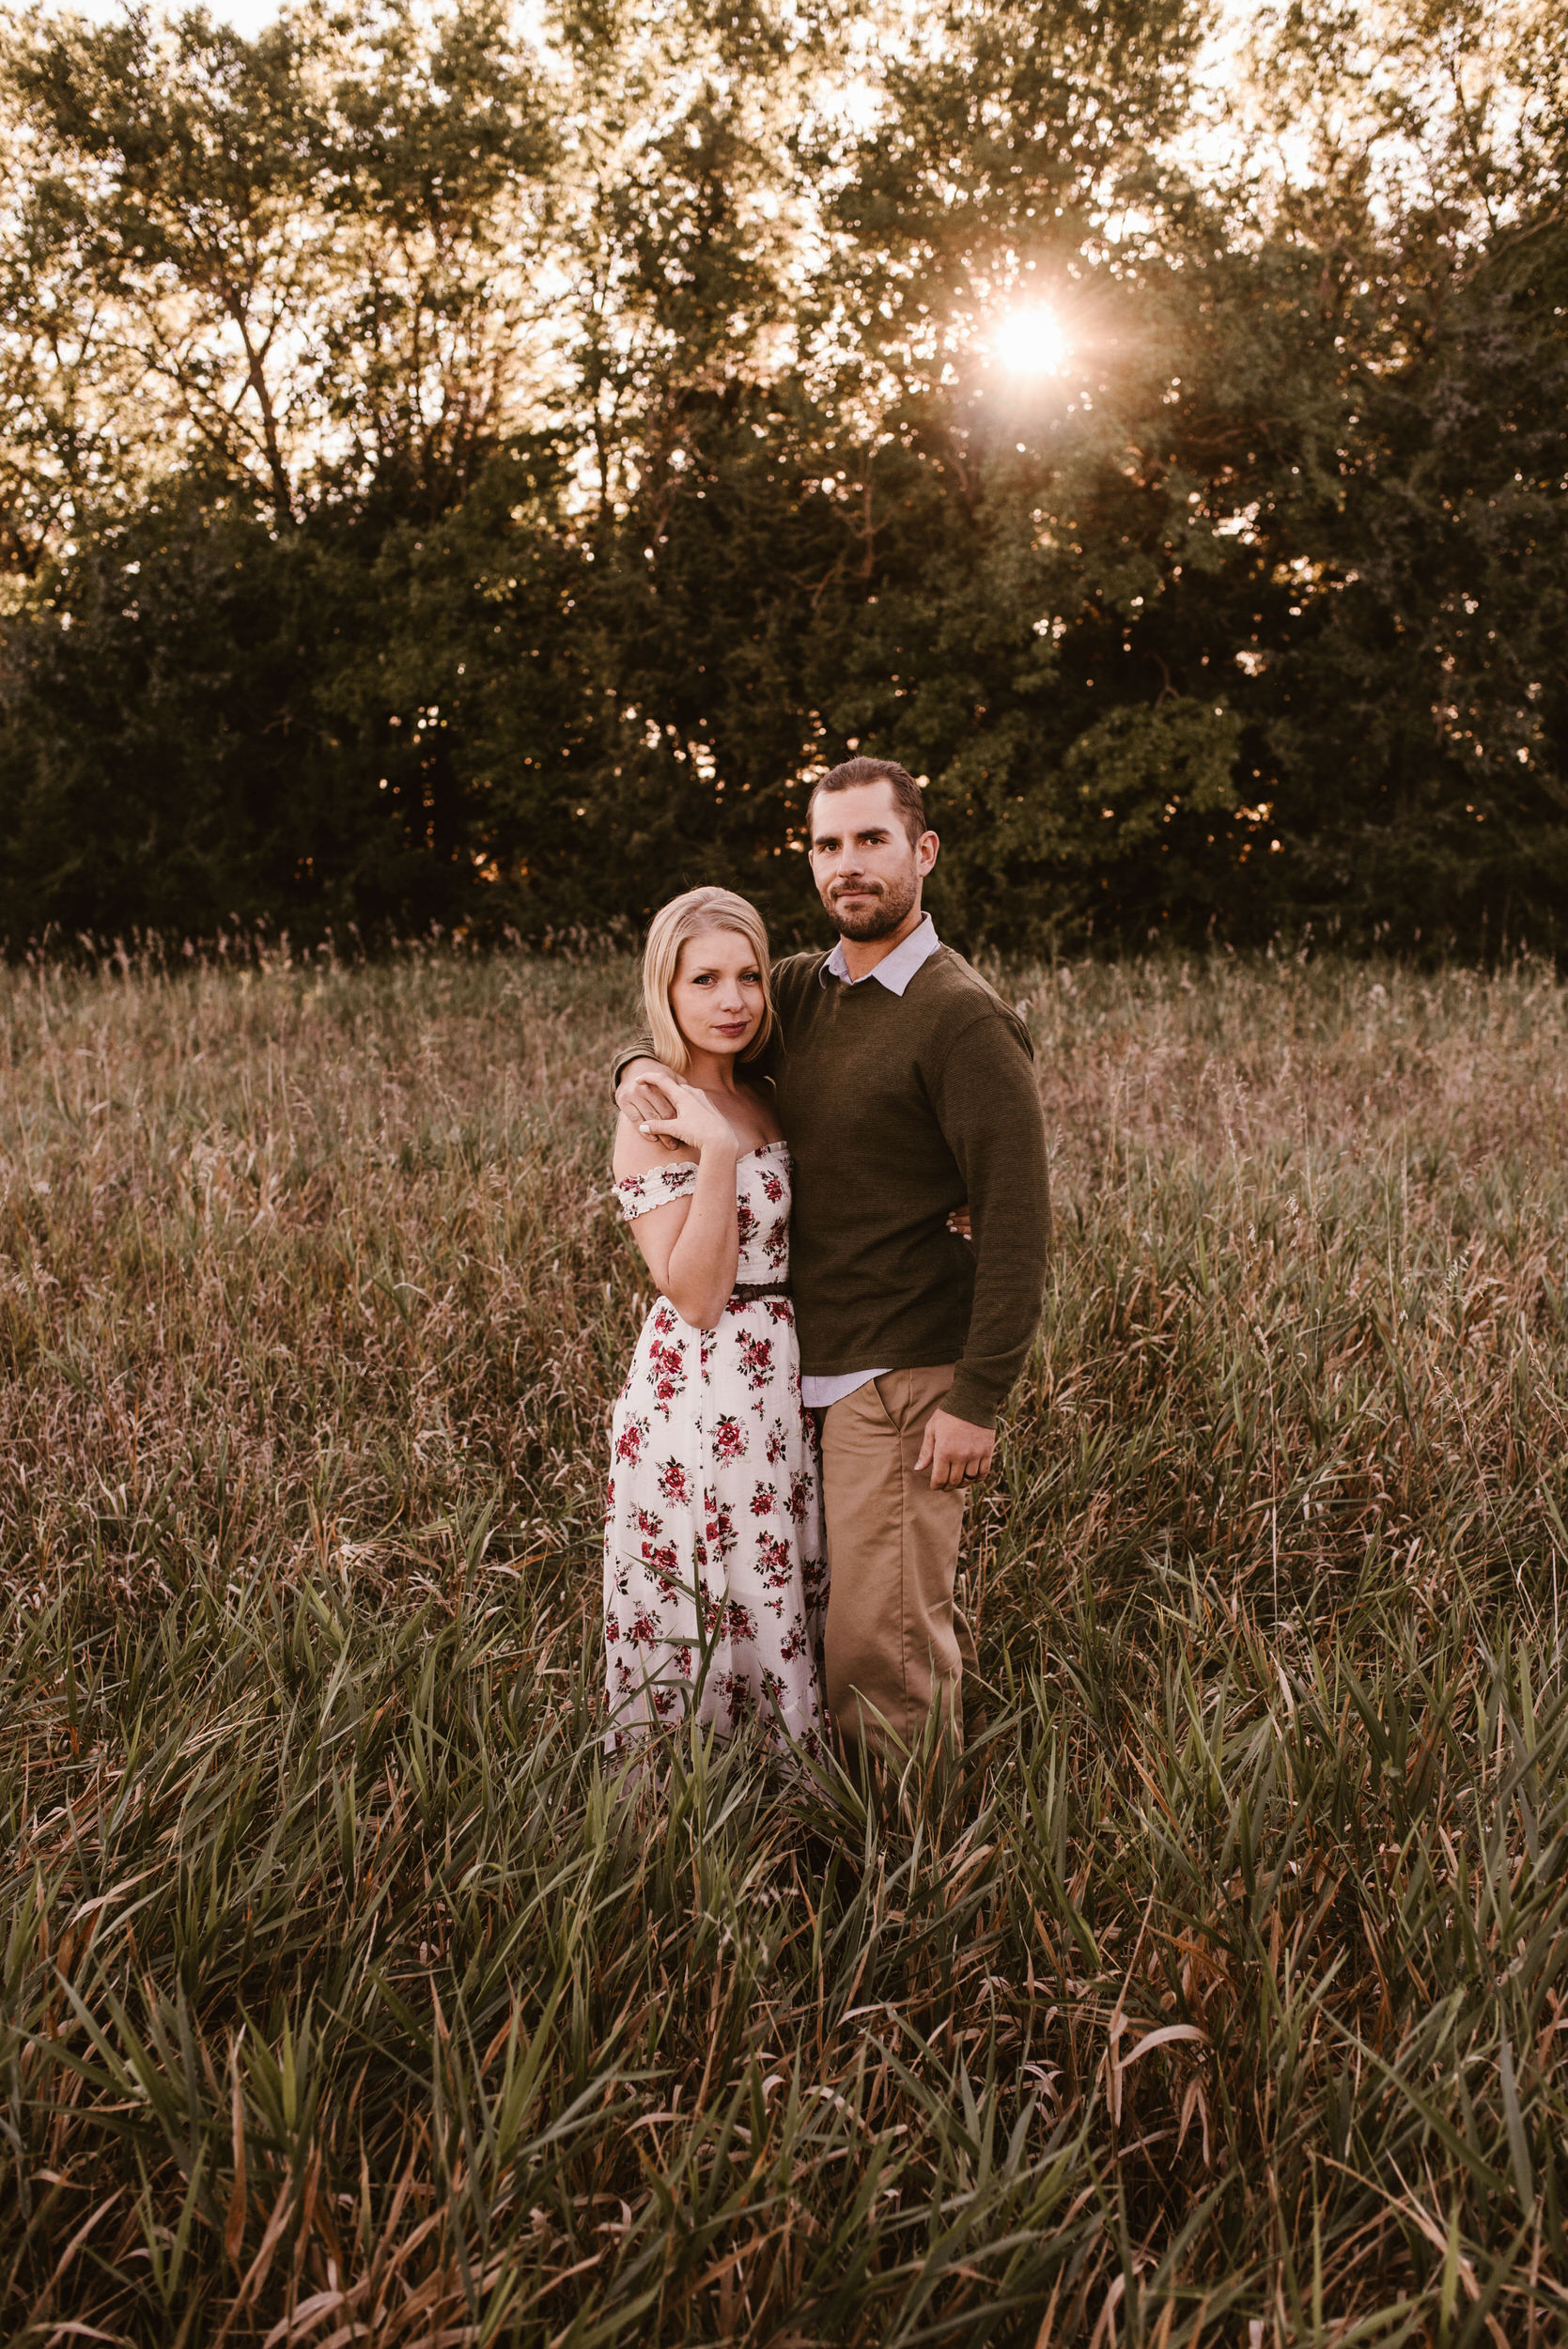 Nebraska Engagement Photographer Kaylie Sirek Photography 07.jpg